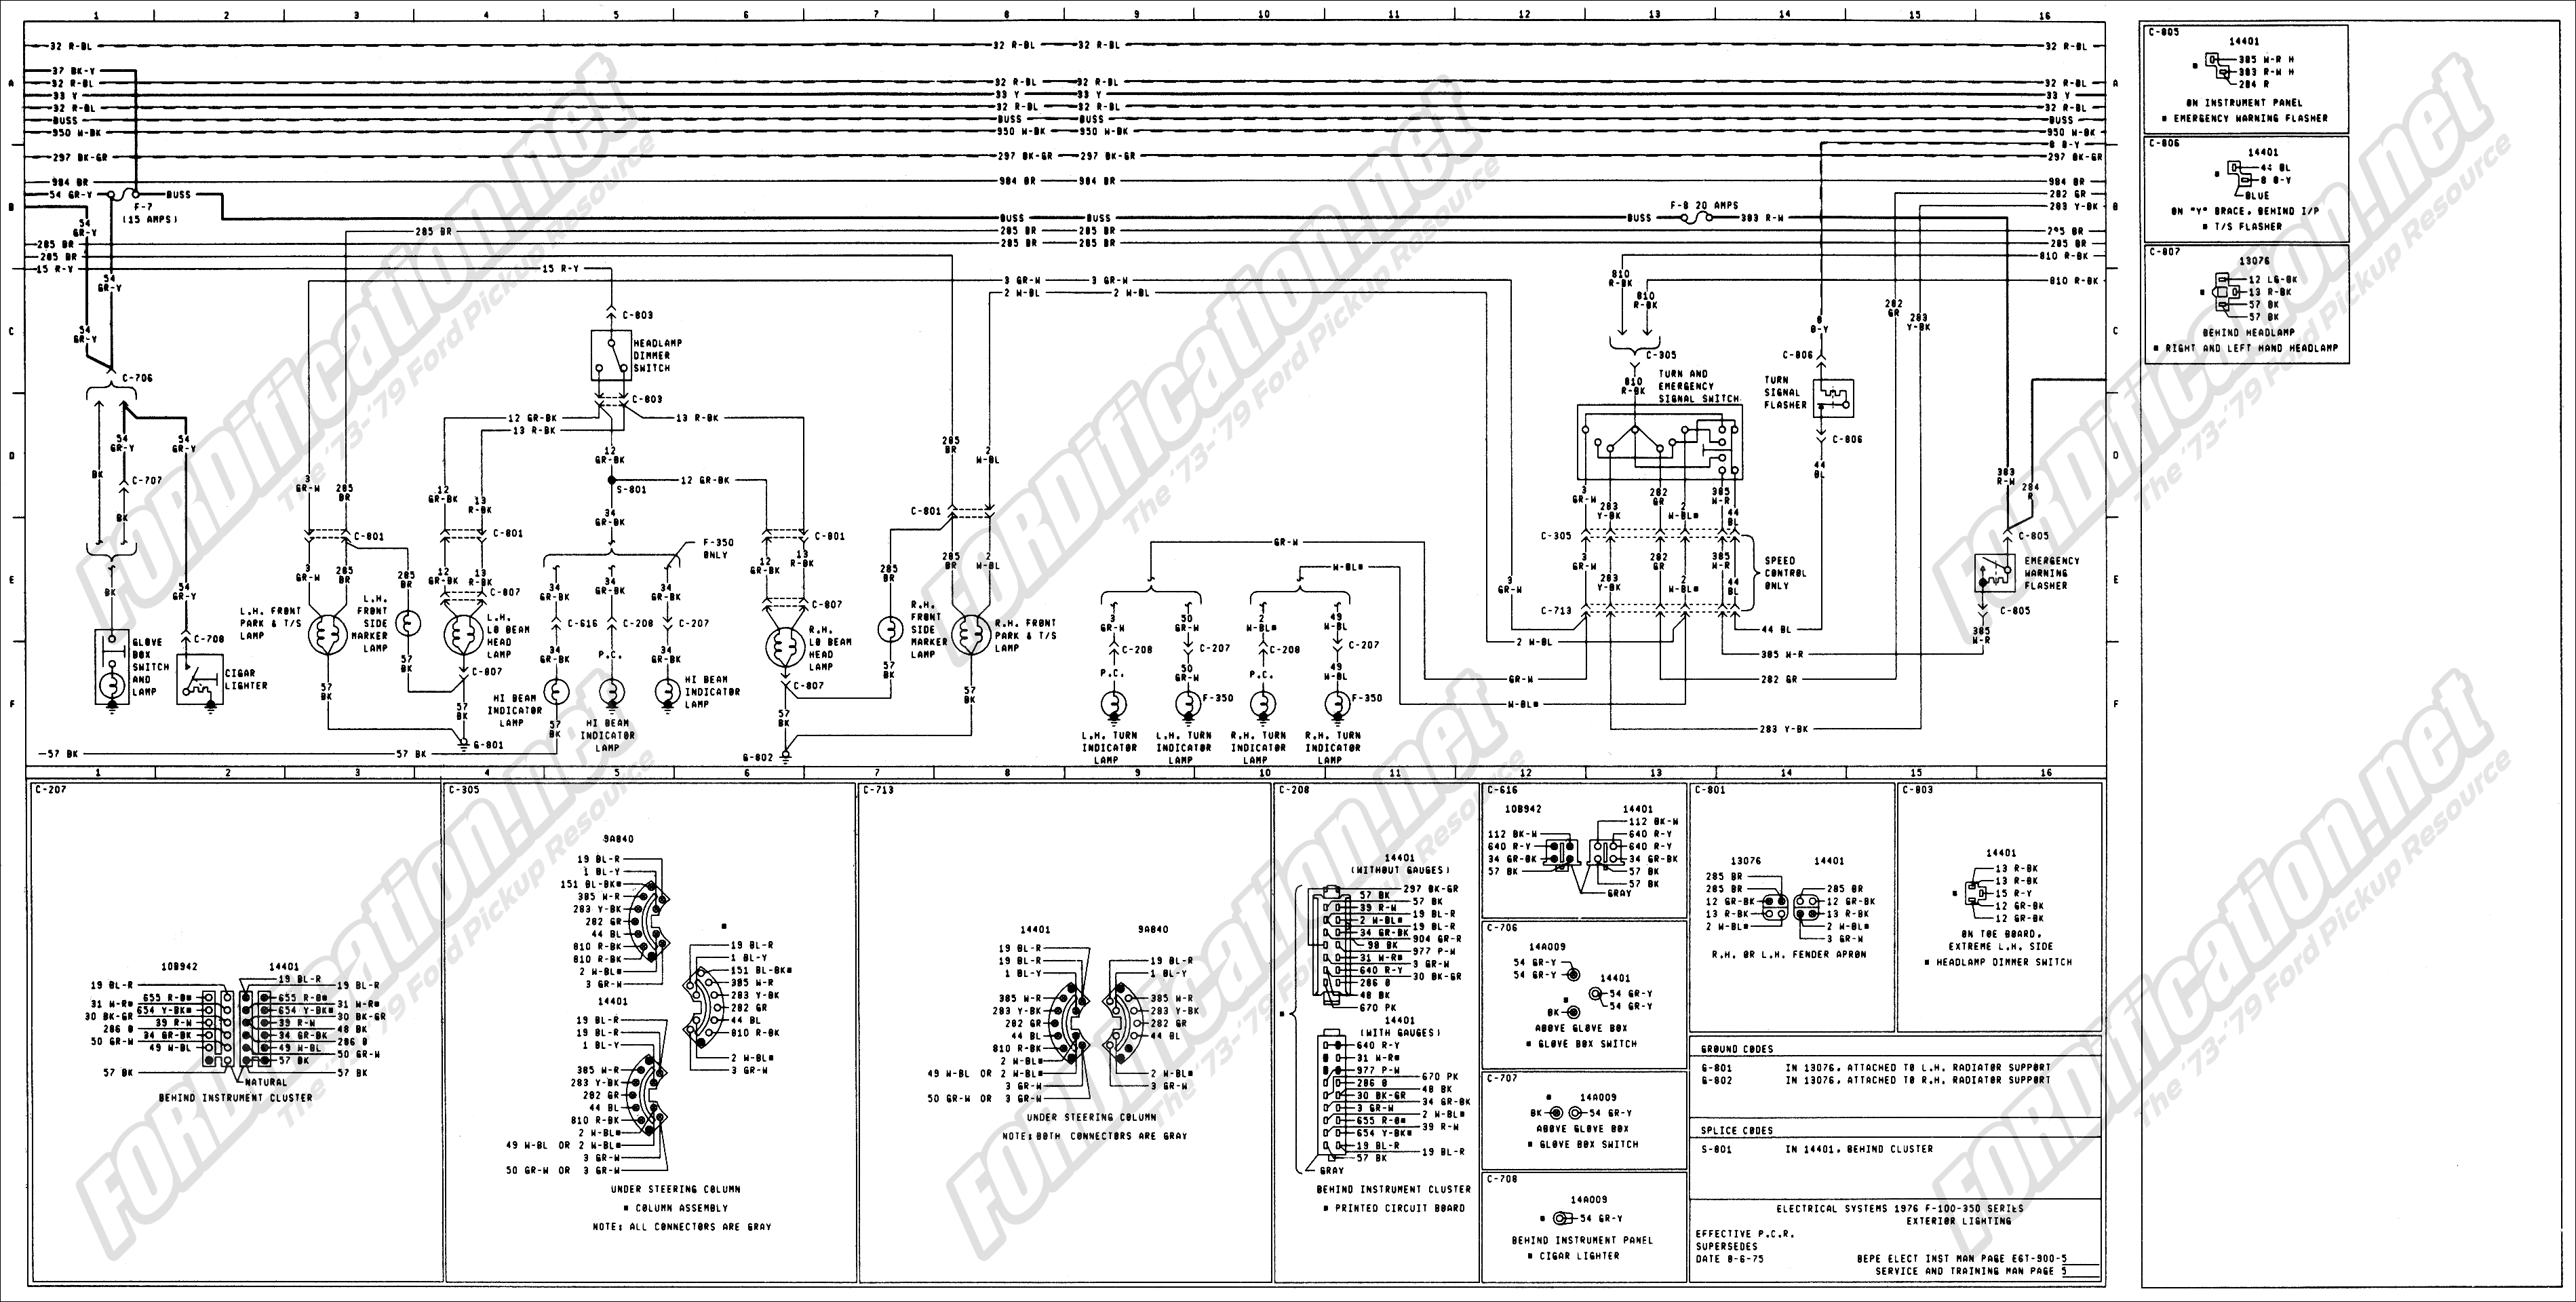 wiring_76master_5of9 1973 1979 ford truck wiring diagrams & schematics fordification net 1976 ford f100 wiring diagram at panicattacktreatment.co